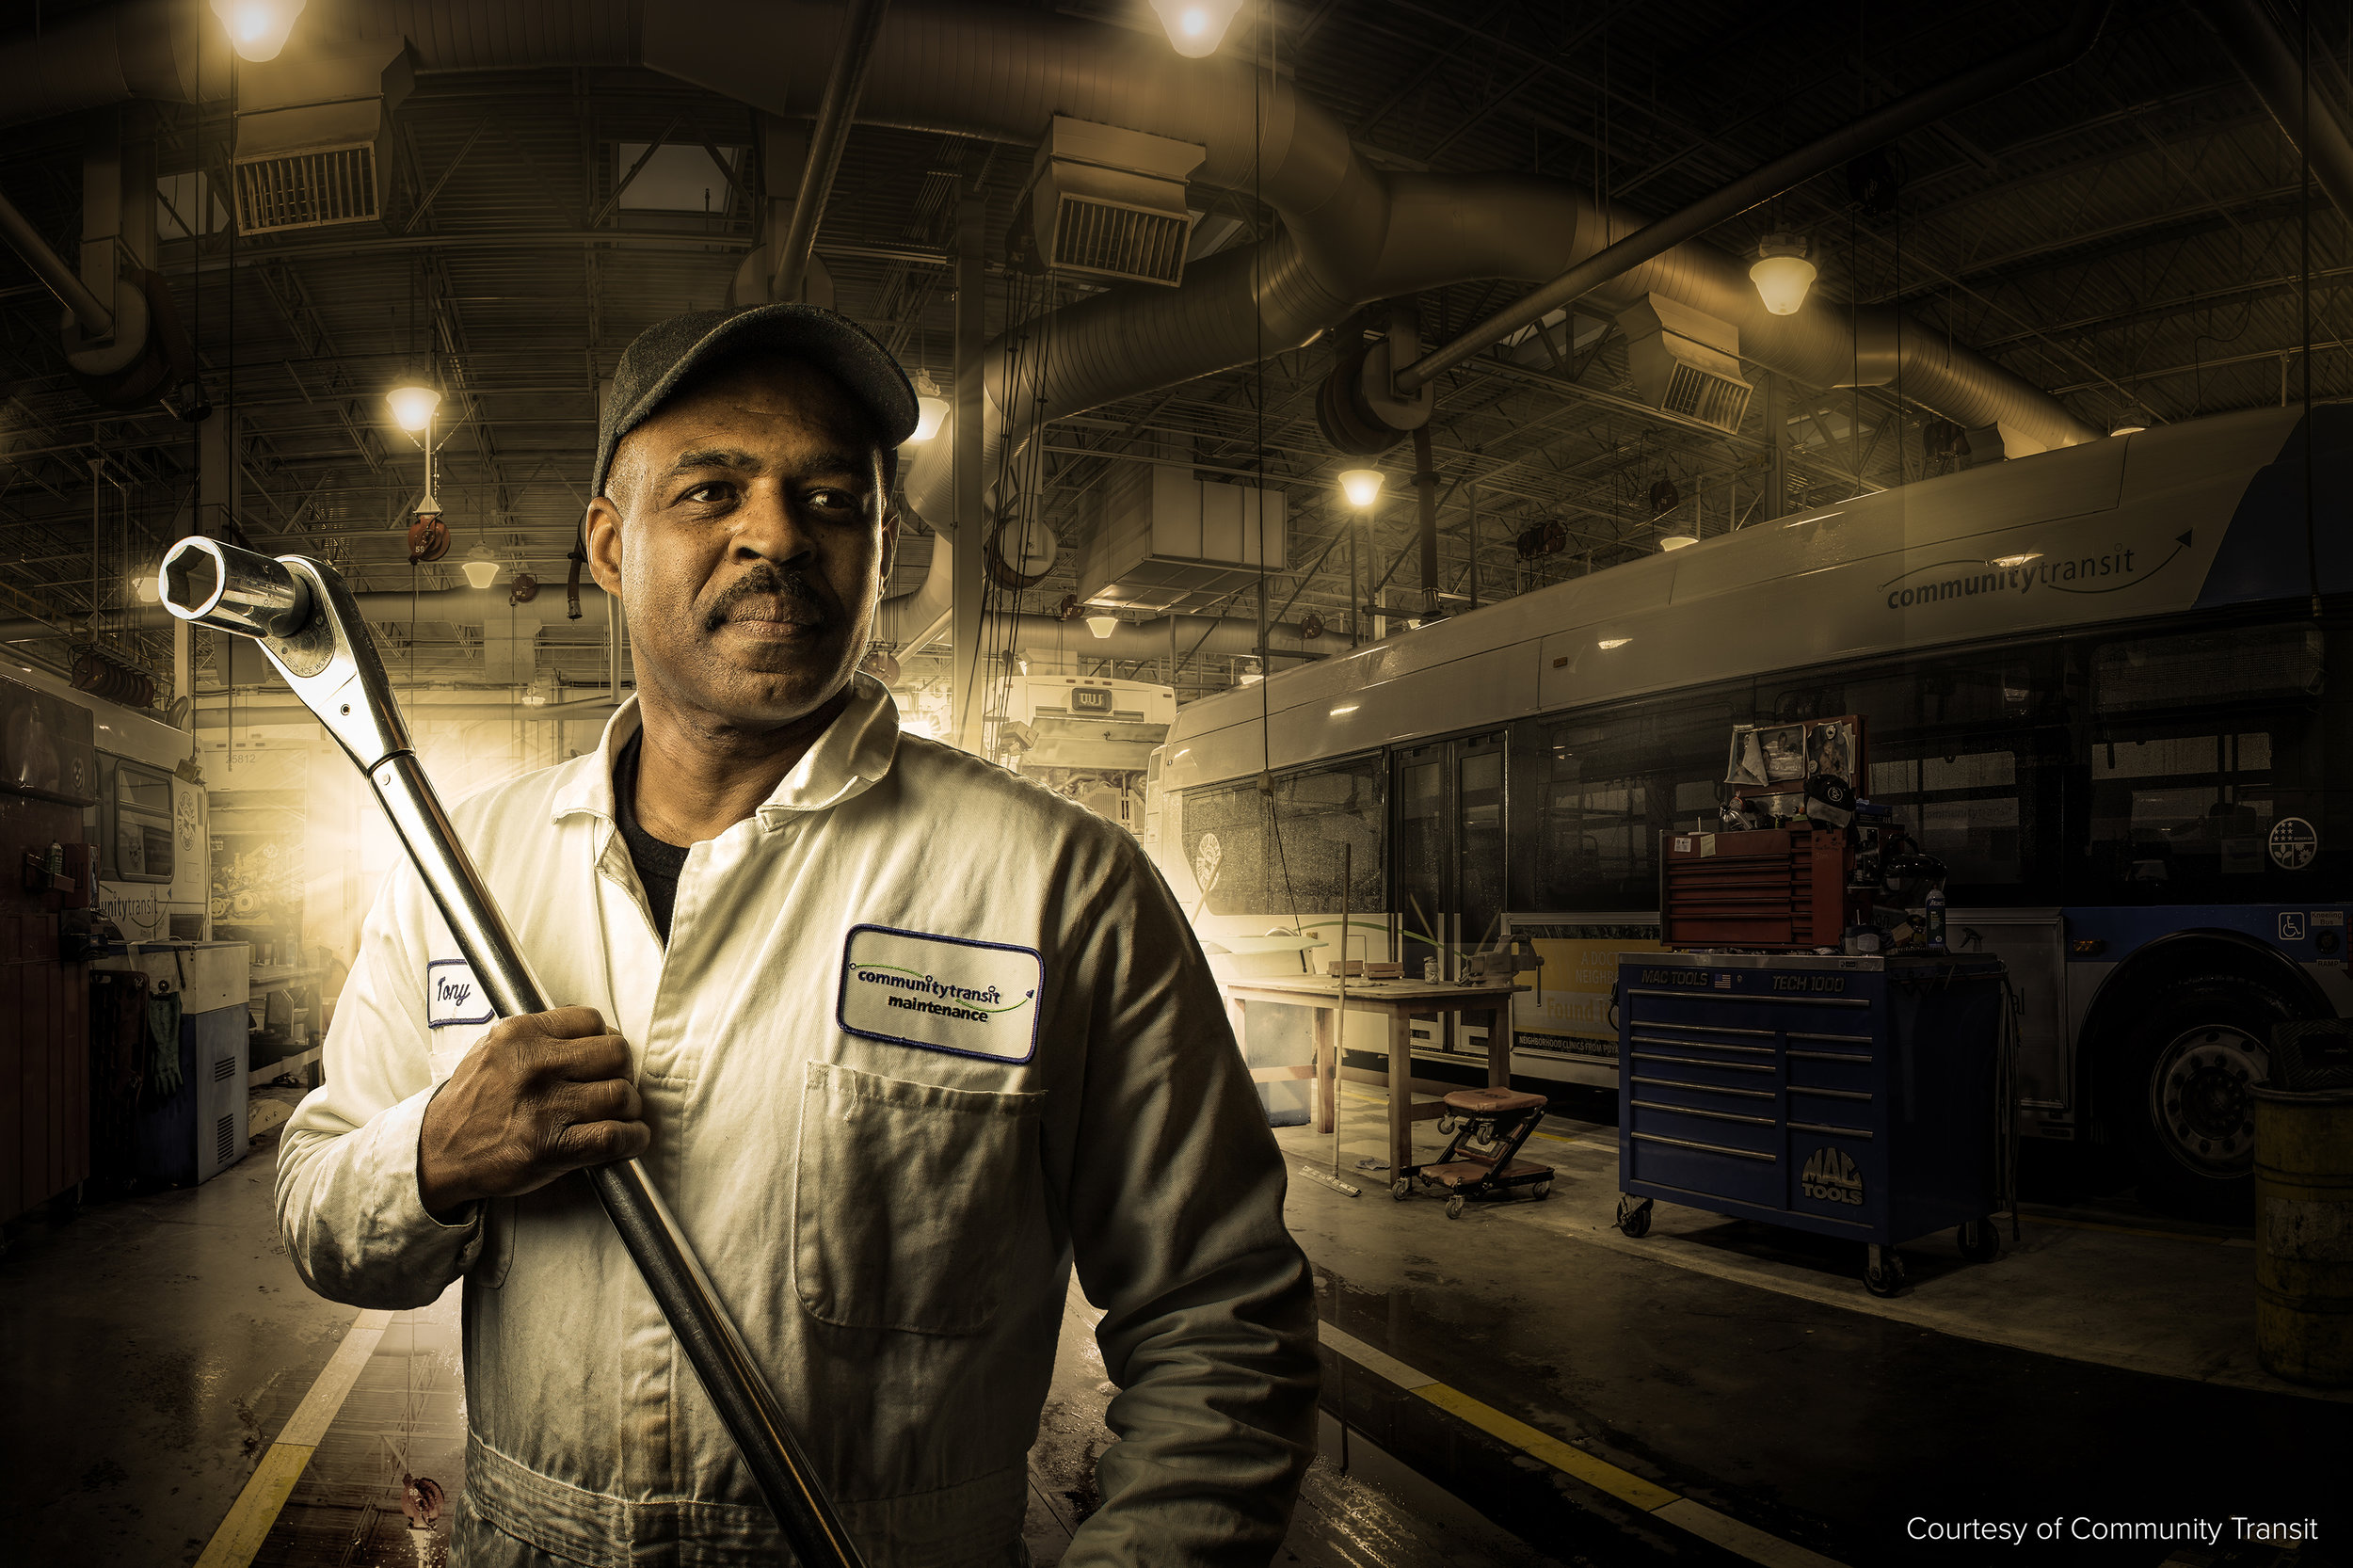 Mechanic Portrait, Everett Washington